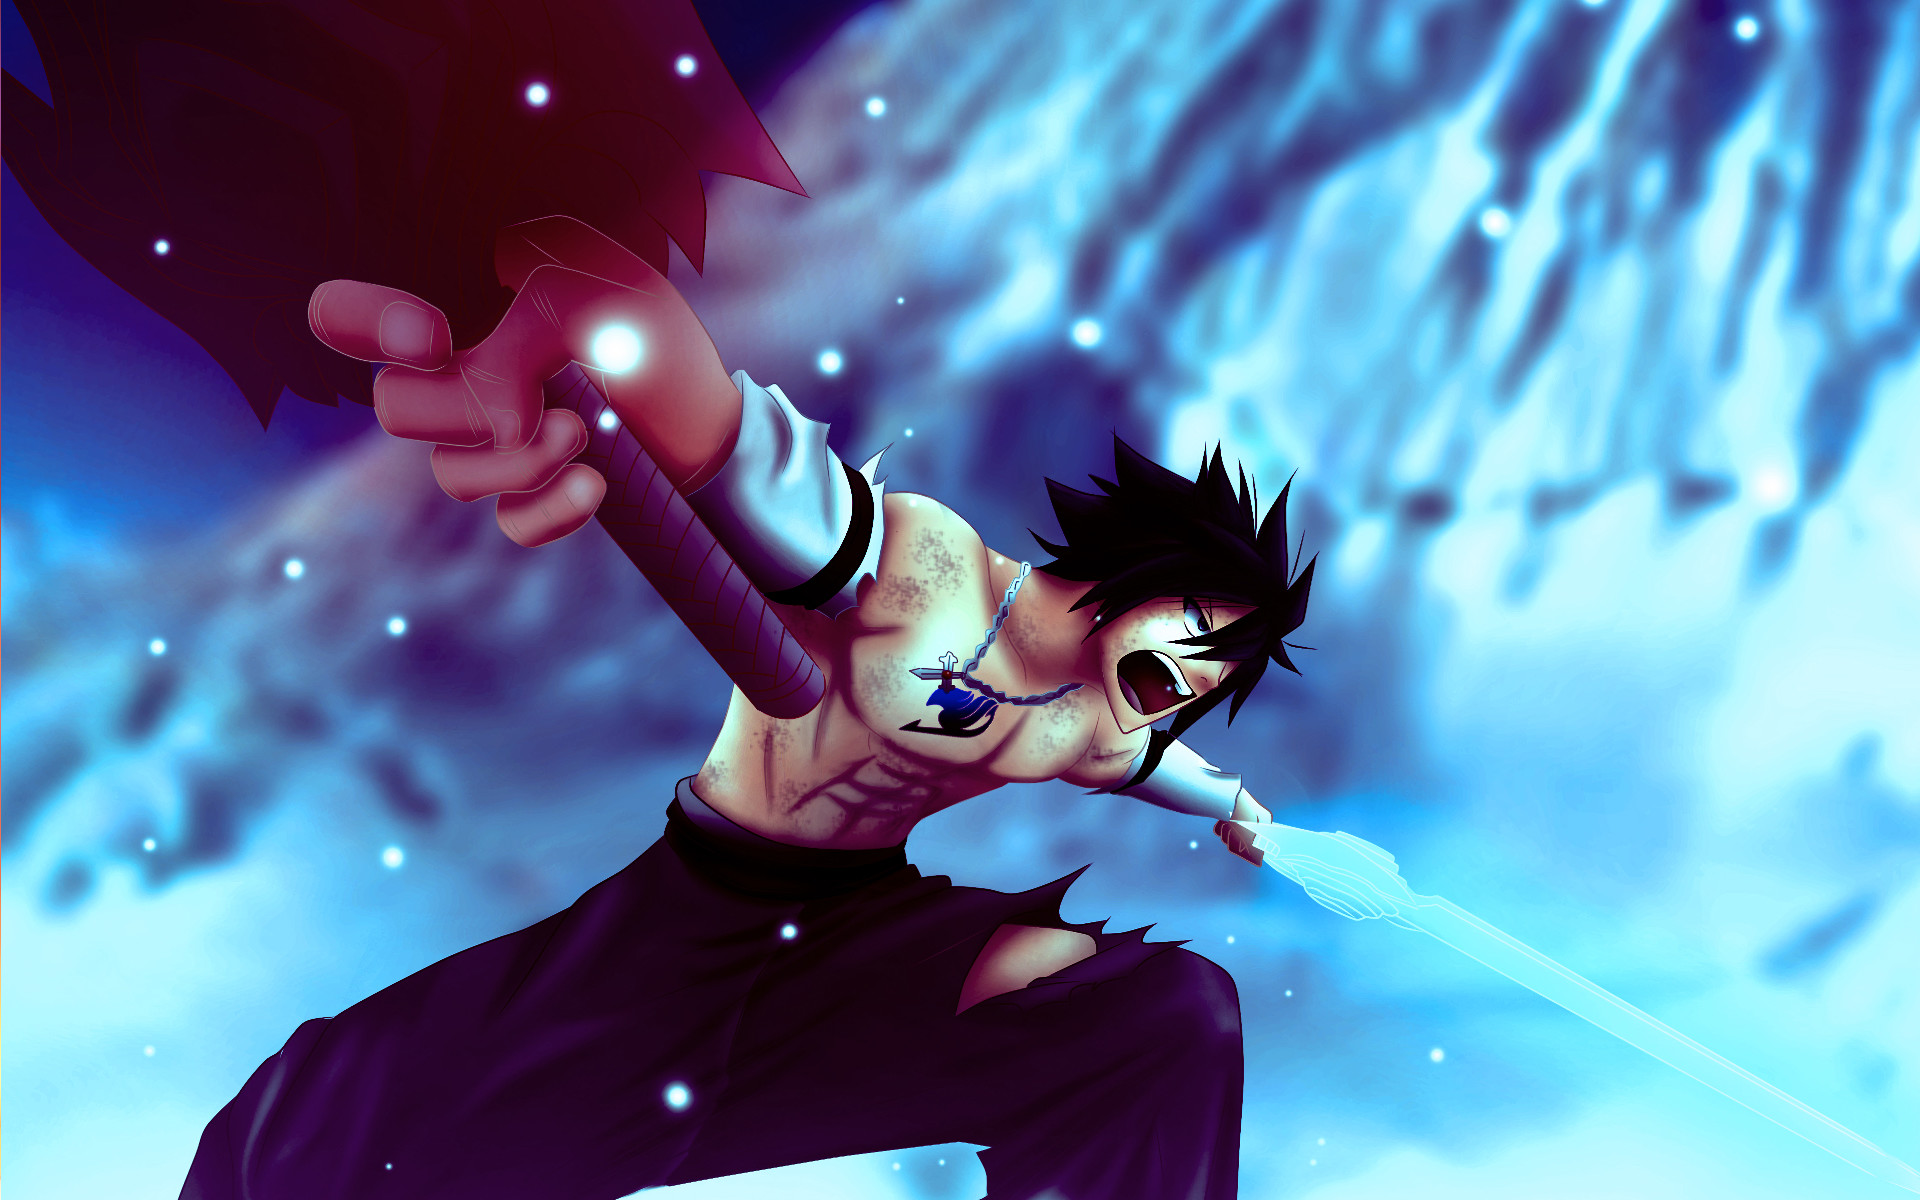 Fairy Tail Gray Fullbuster Wallpaper 73 Images